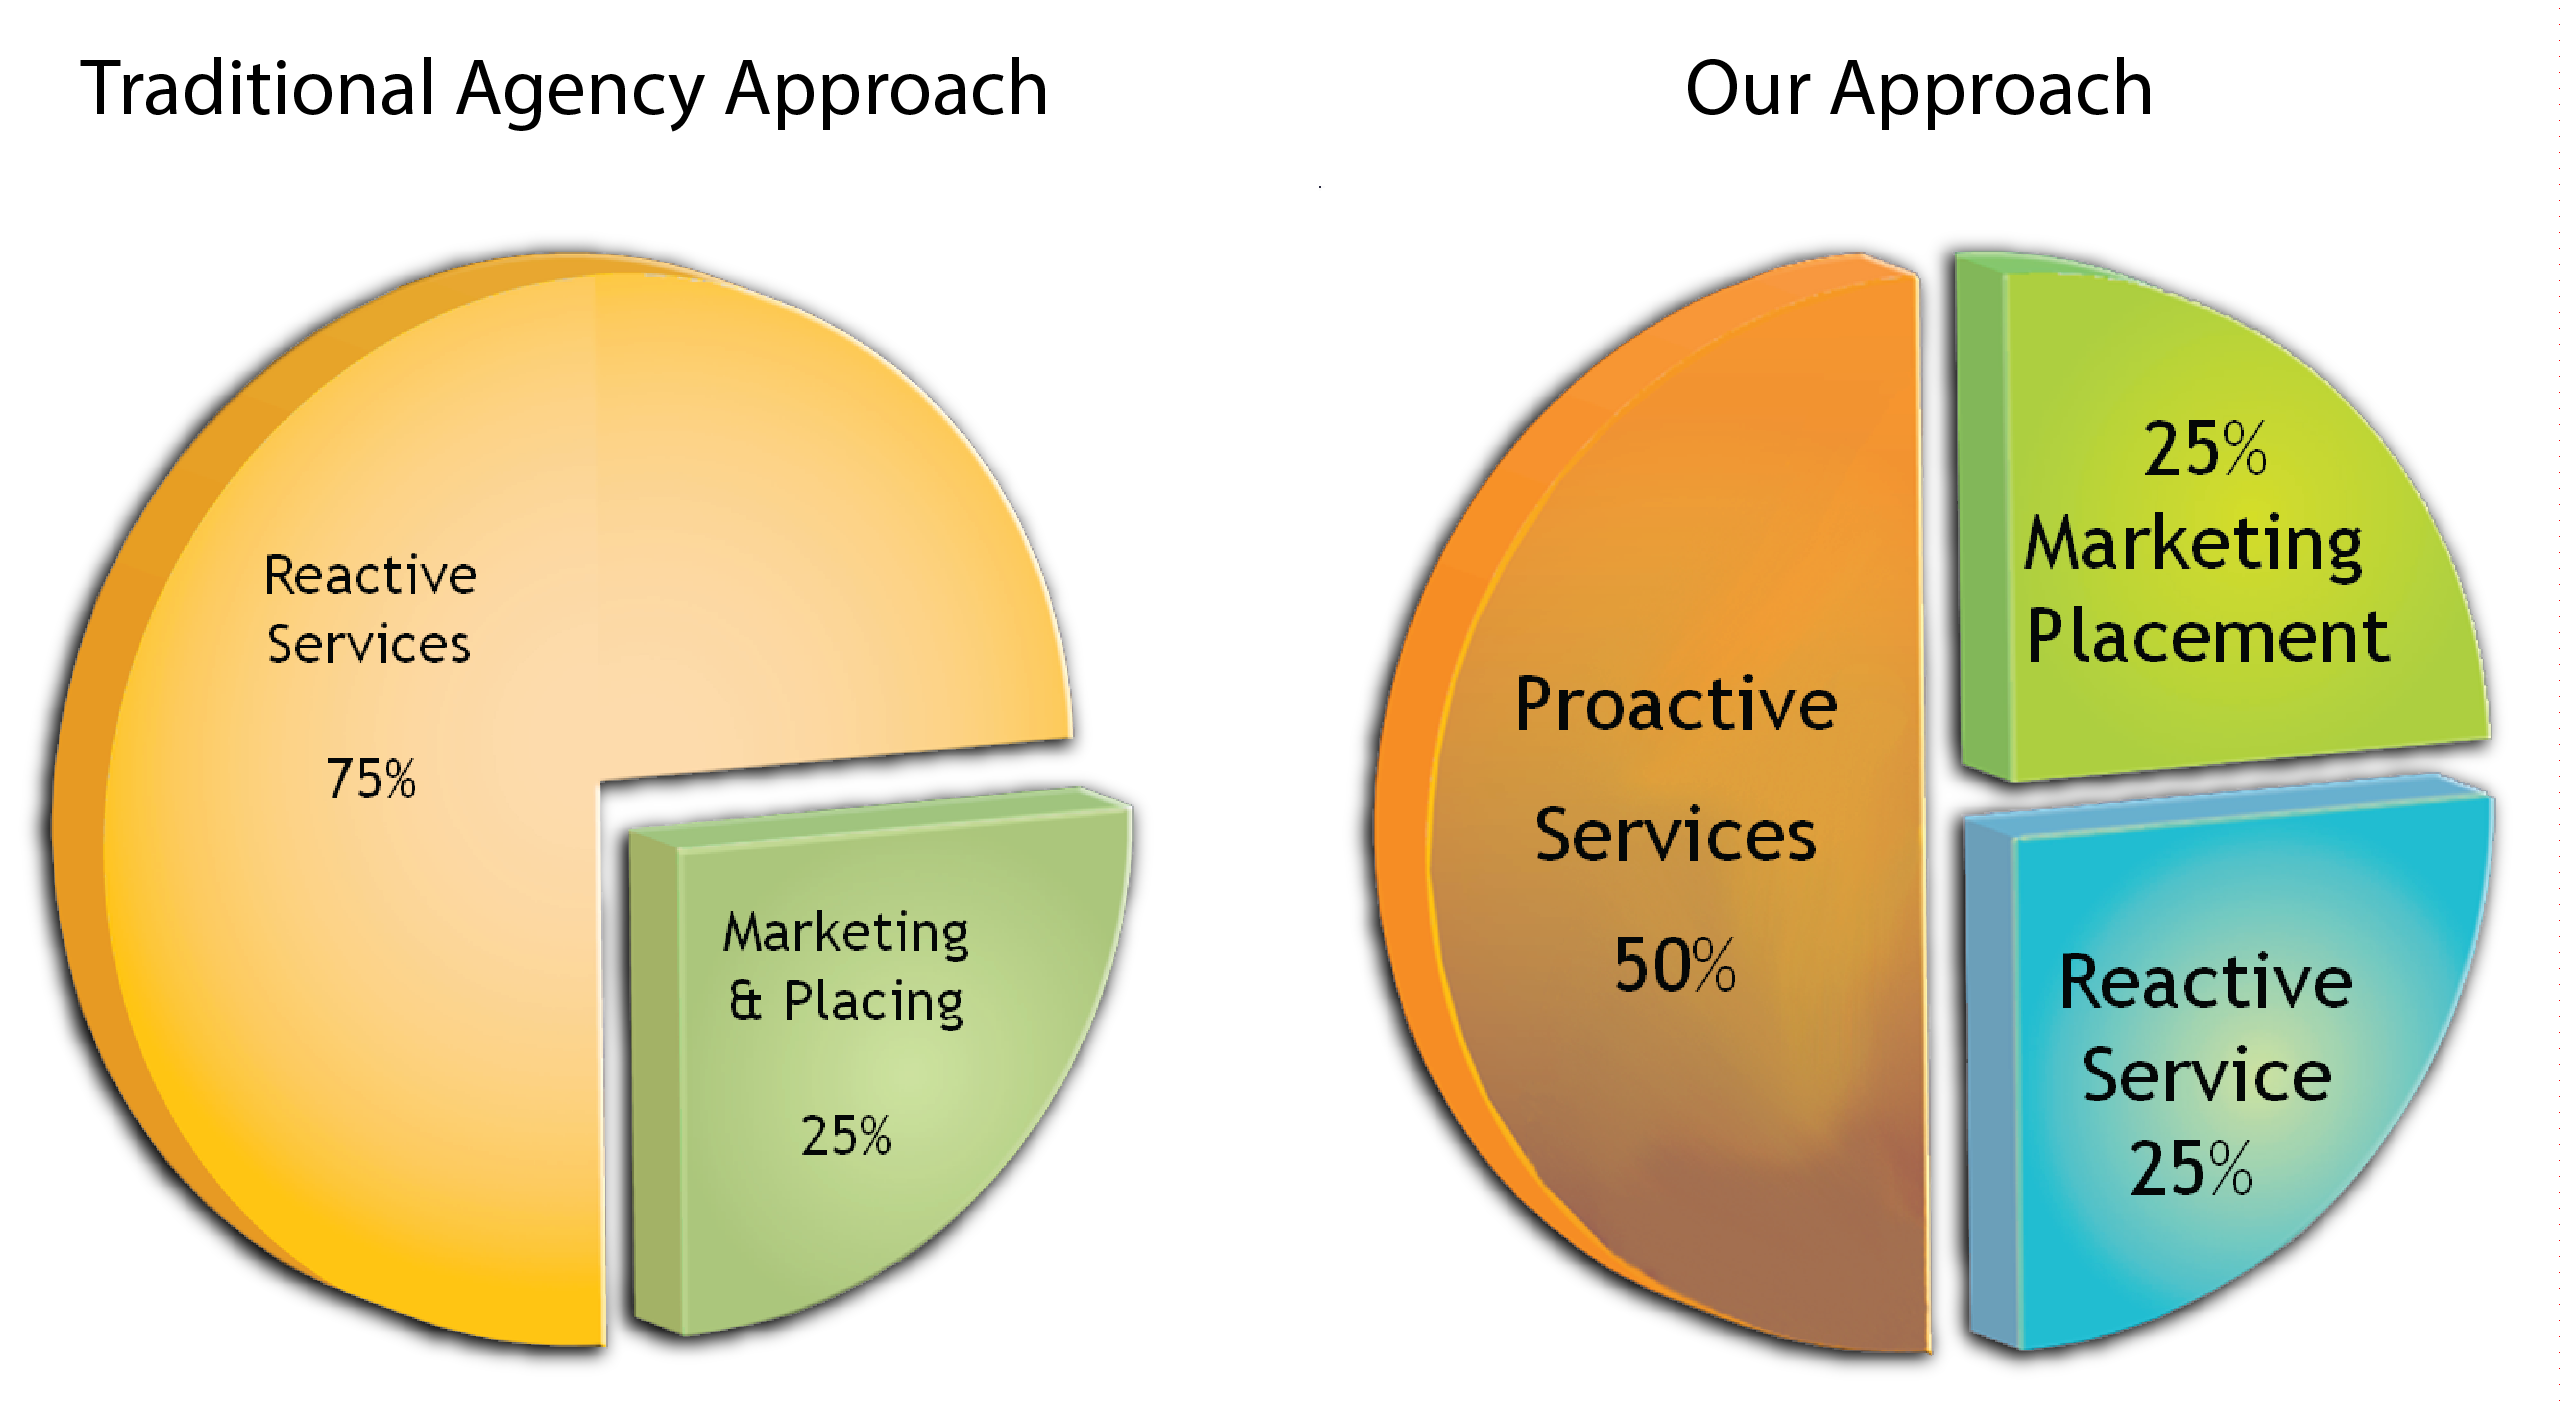 Our approach versus the traditional insurance agency